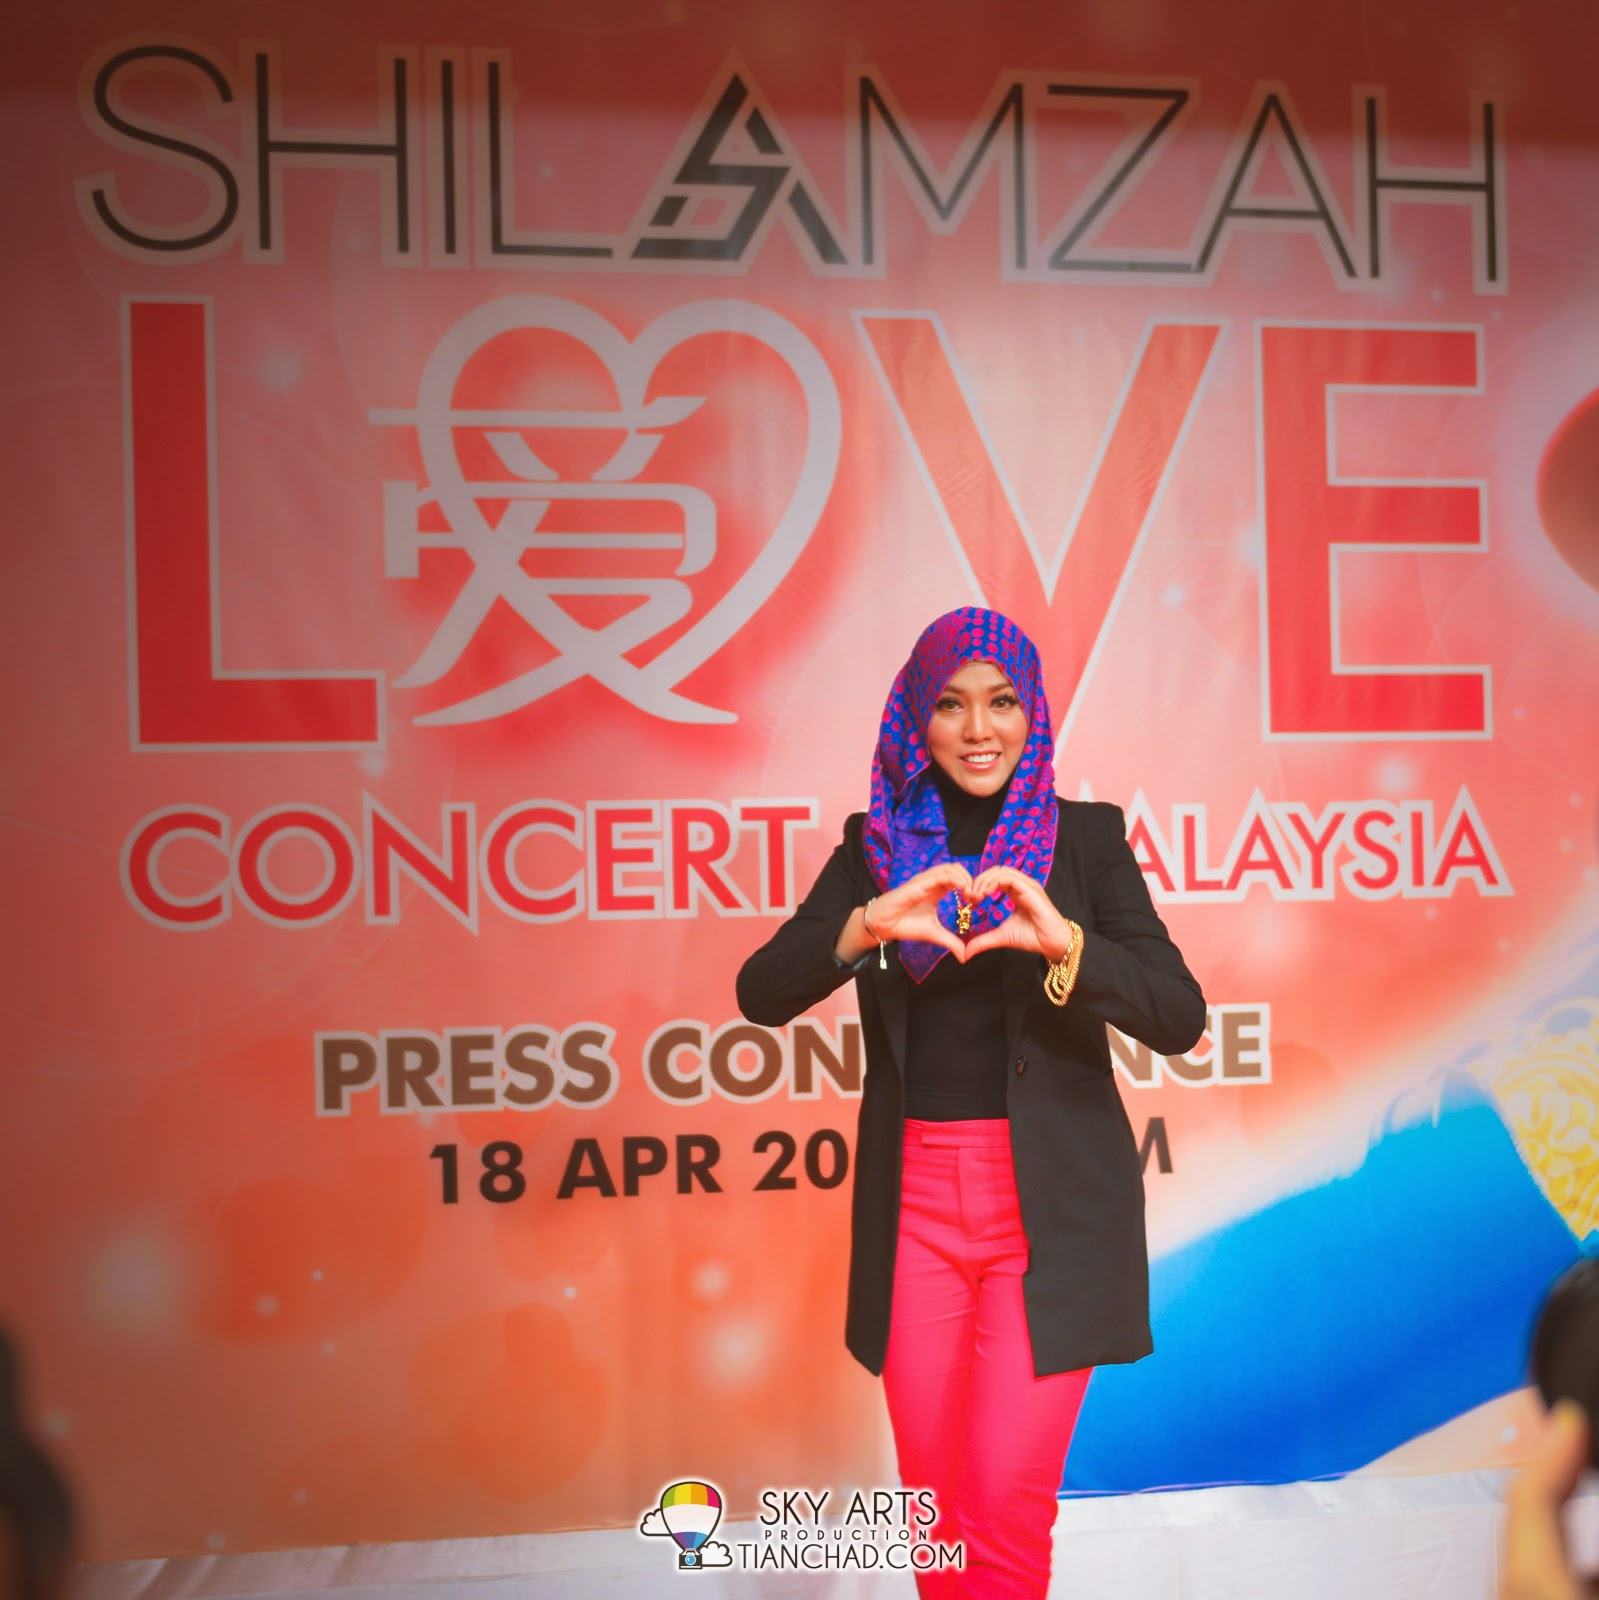 Here's LOVE to all the fans around the world by Shila Amzah!!